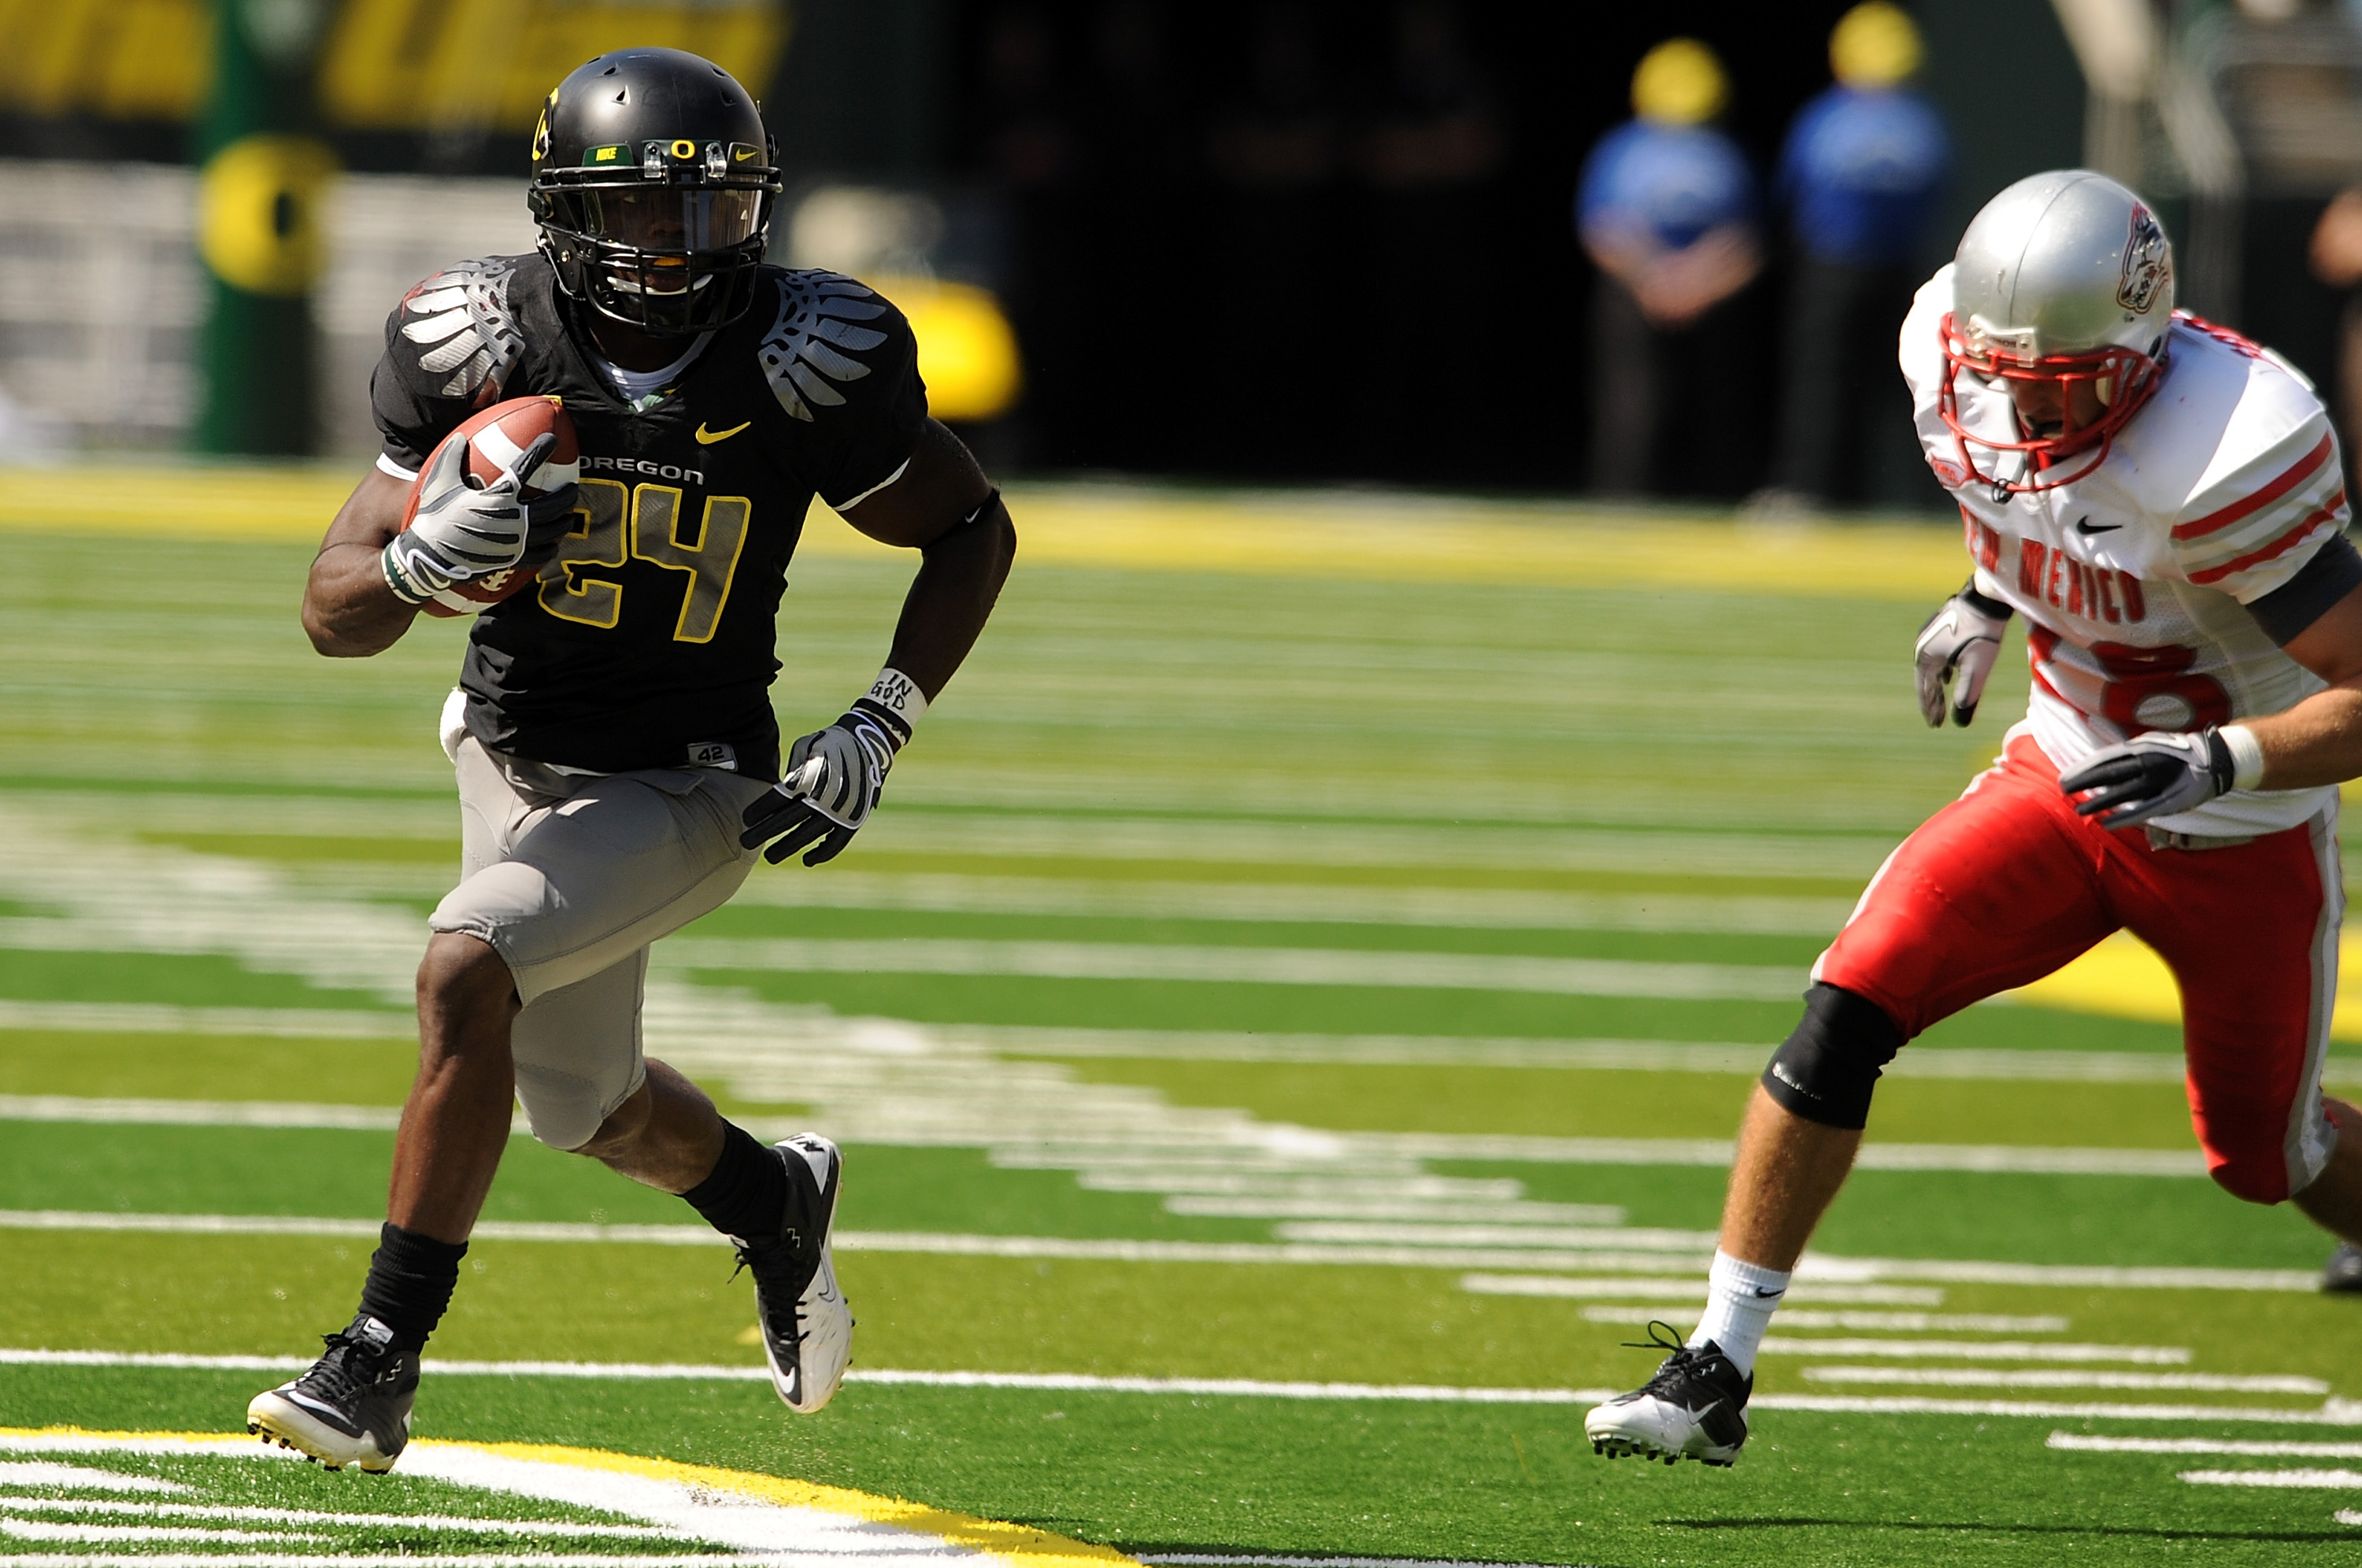 EUGENE, OR - SEPTEMBER 04: Running back Kenjon Barner #24 of the Oregon Ducks heads for the endzone past safety Bubba Forrest of the New Mexico Lobos and a touchdown in the second quarter of the game at Autzen Stadium on September 4, 2010 in Eugene, Orego